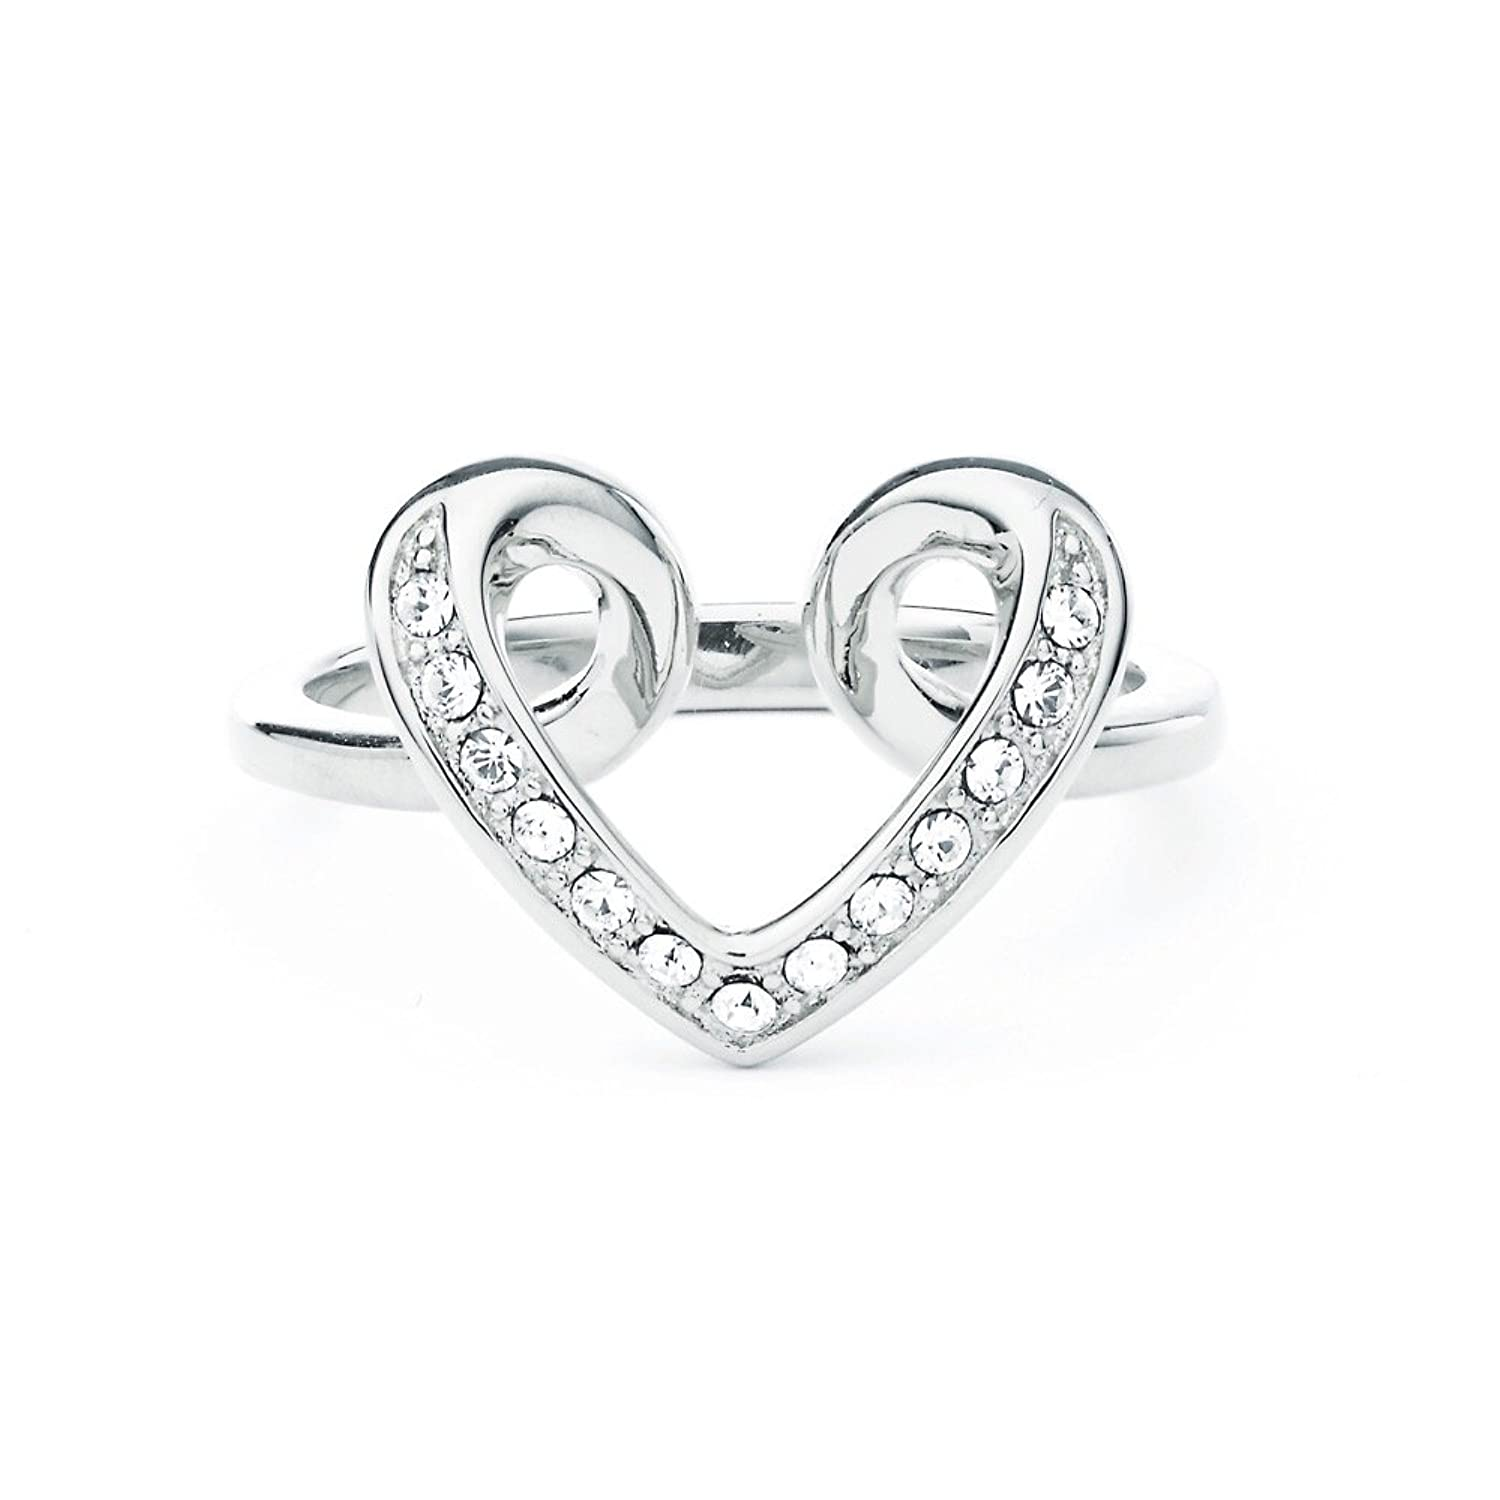 My Jewellery Story MYJS Cupidon Heart Love Rhodium Plated Ring with Clear Swarovski Crystals VPPa9mj6